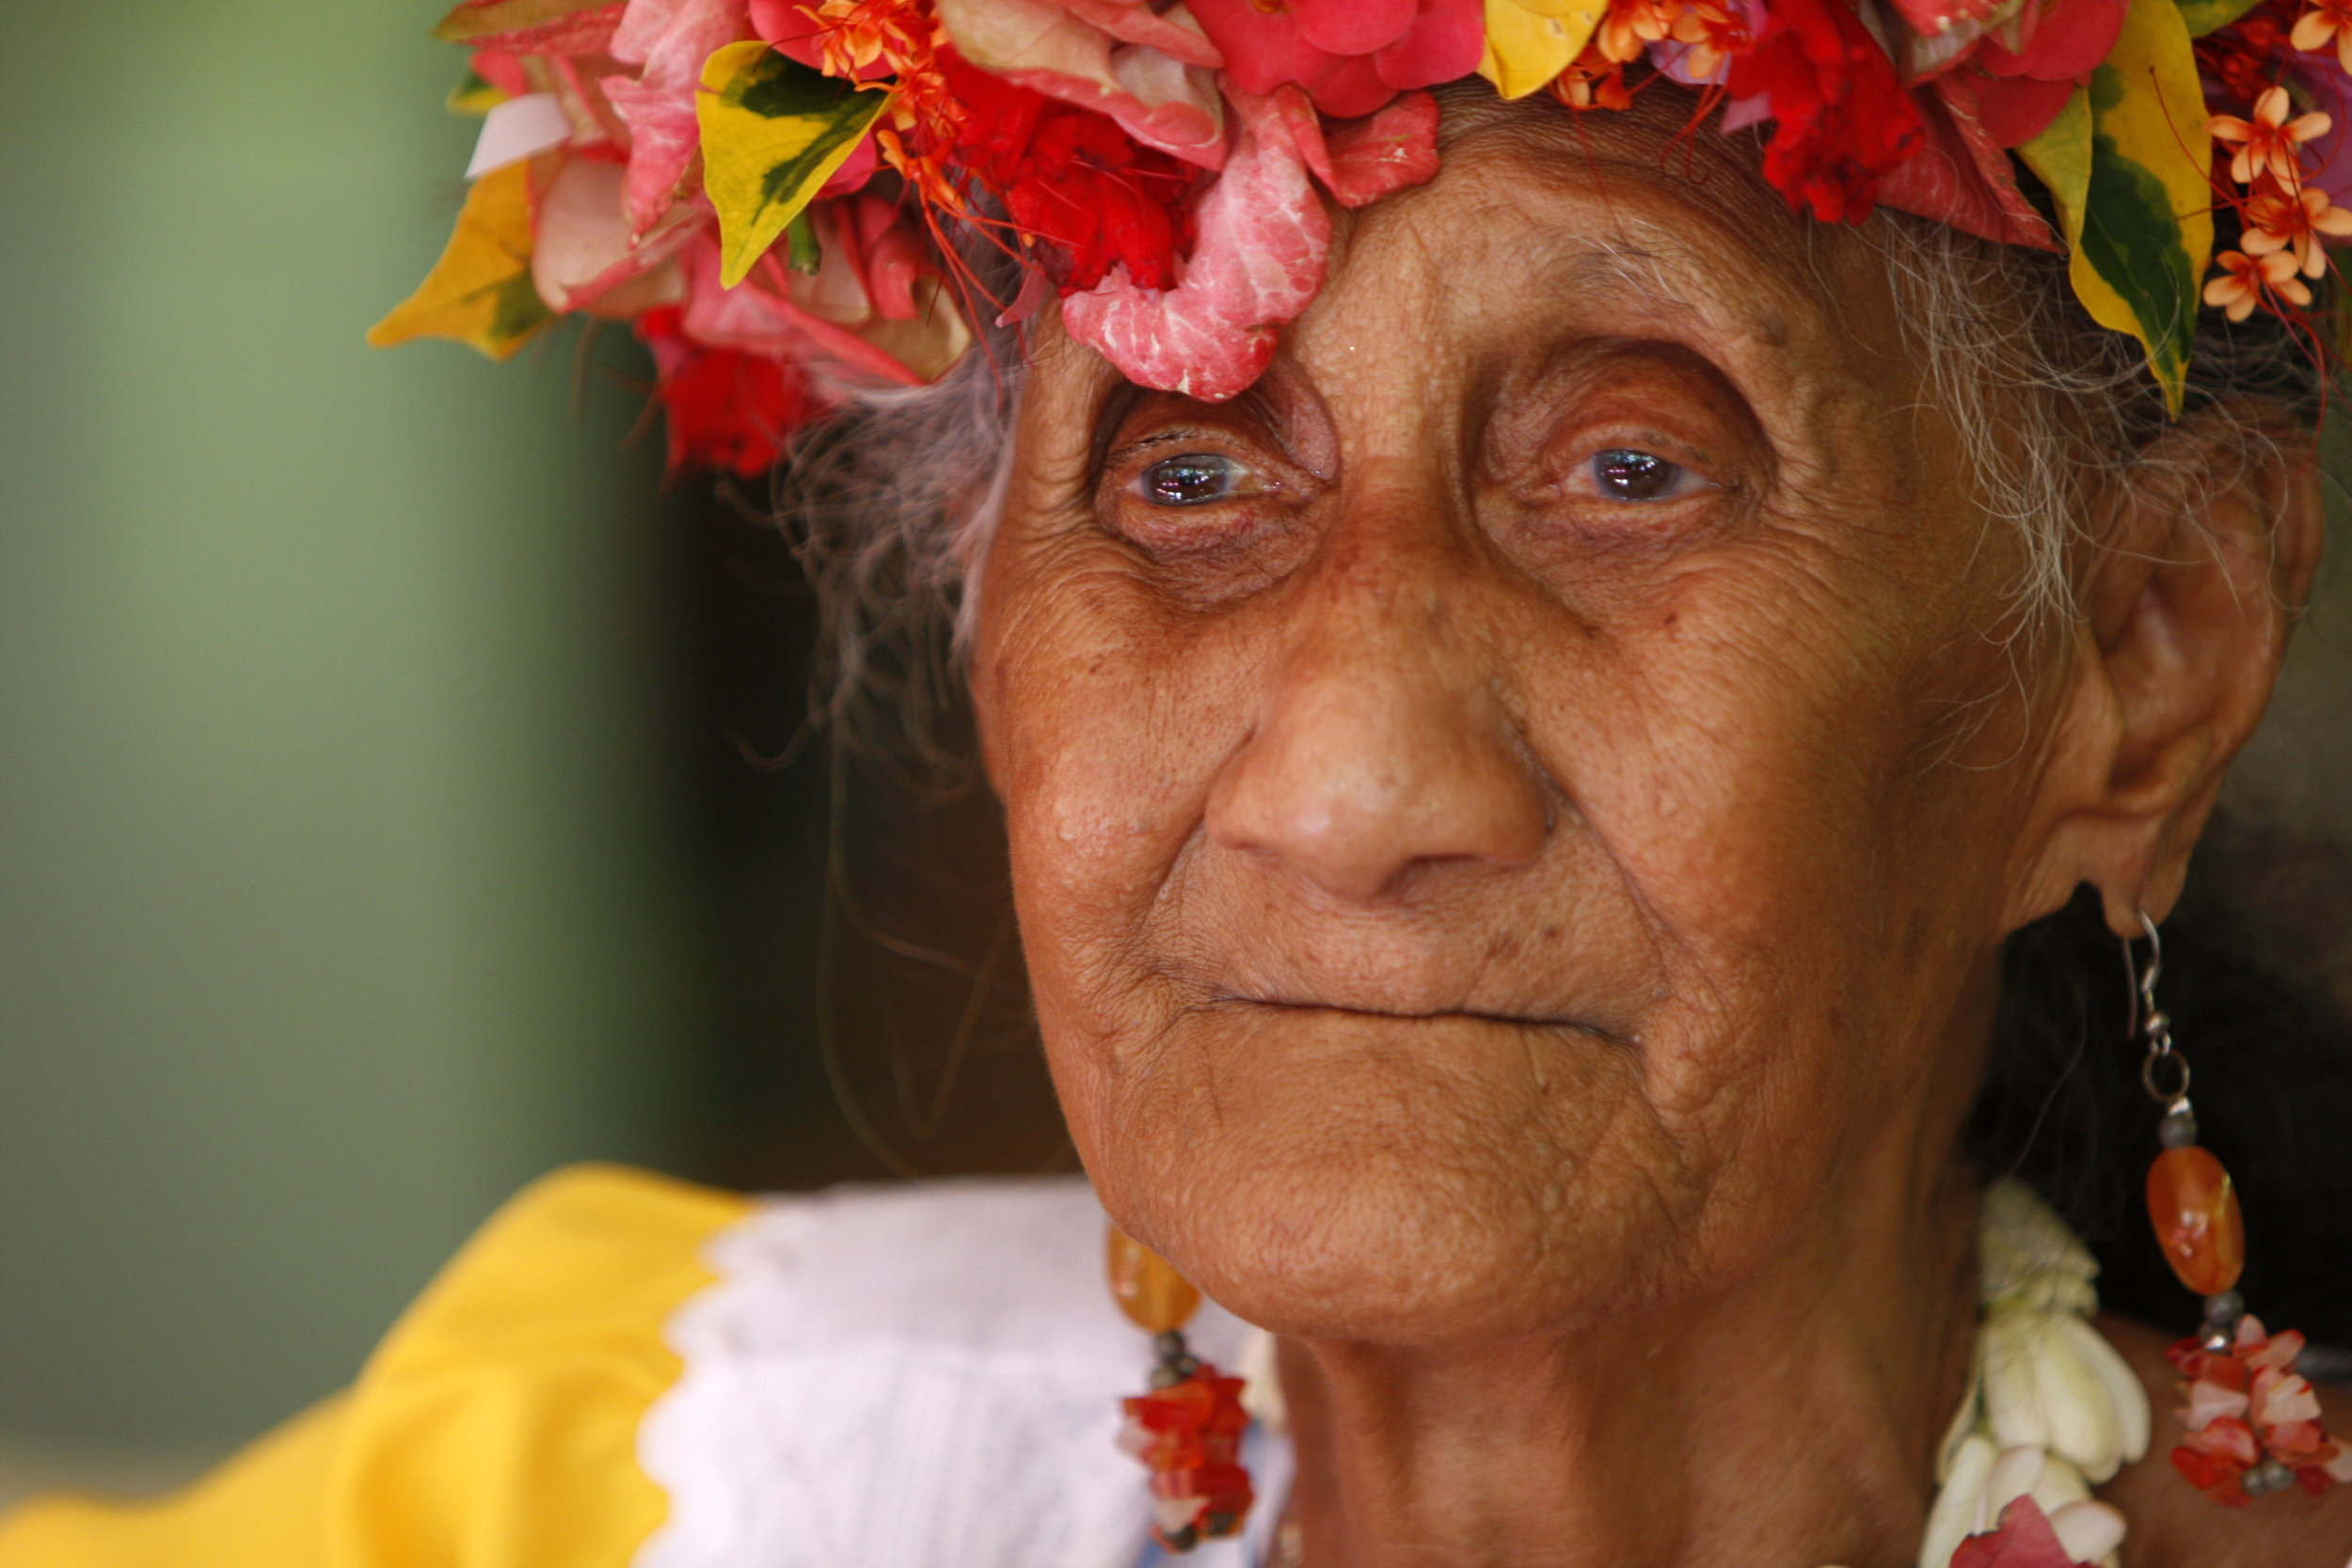 One of the Te Pu Atitia's elder and holder of traditional ecological knowledge.